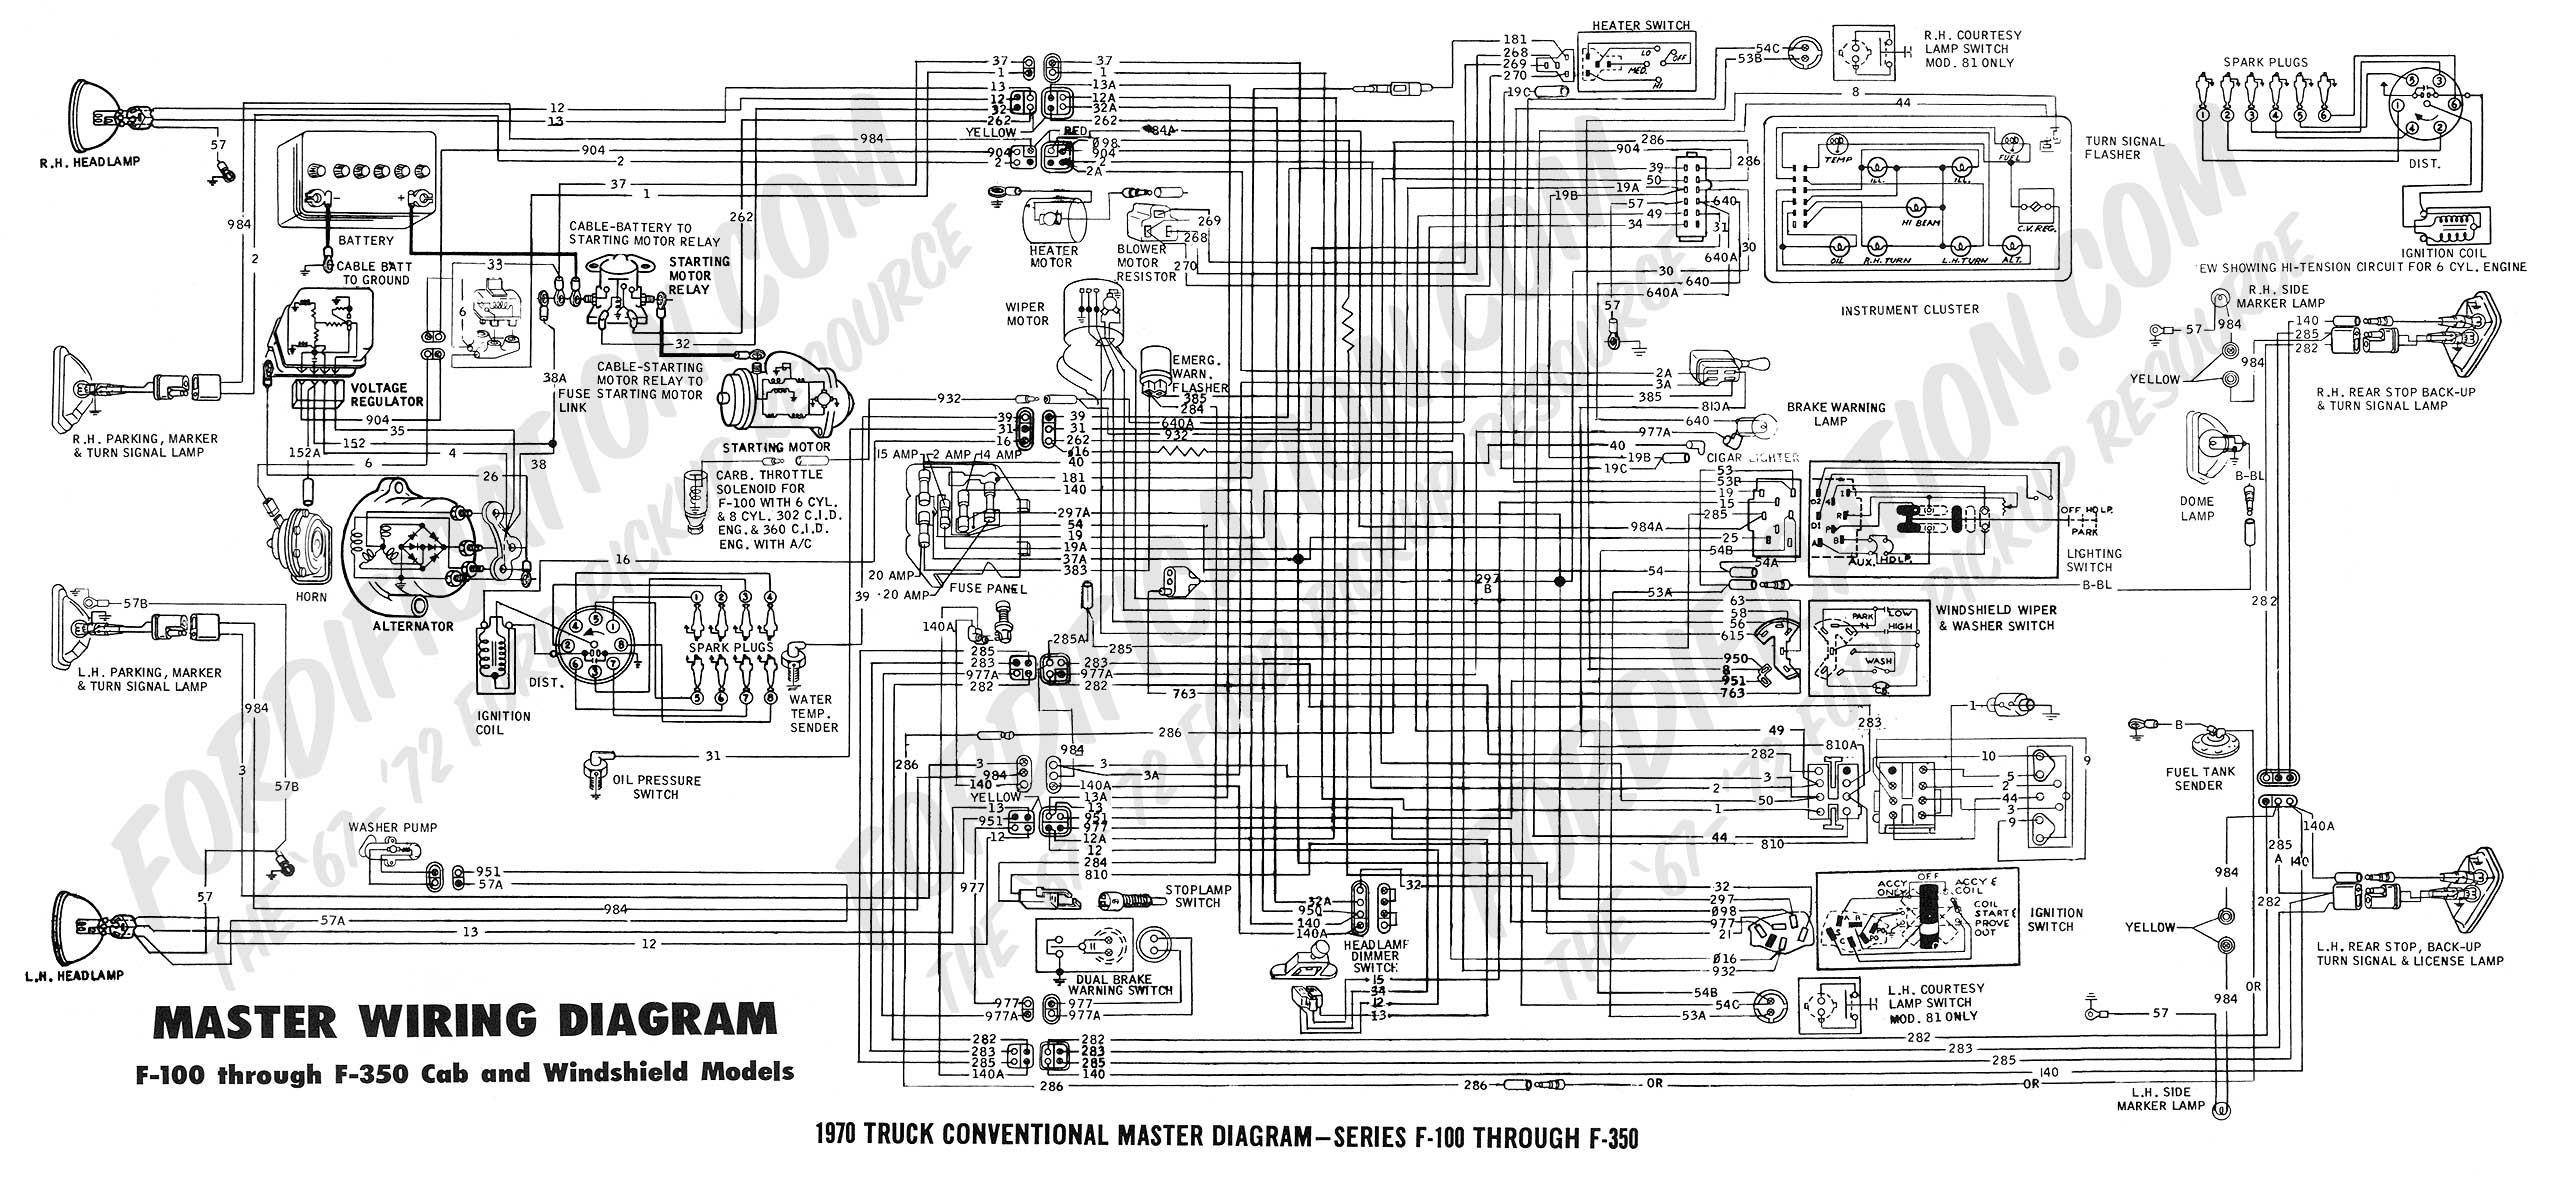 ford f700 wiring diagrams wiring data rh unroutine co